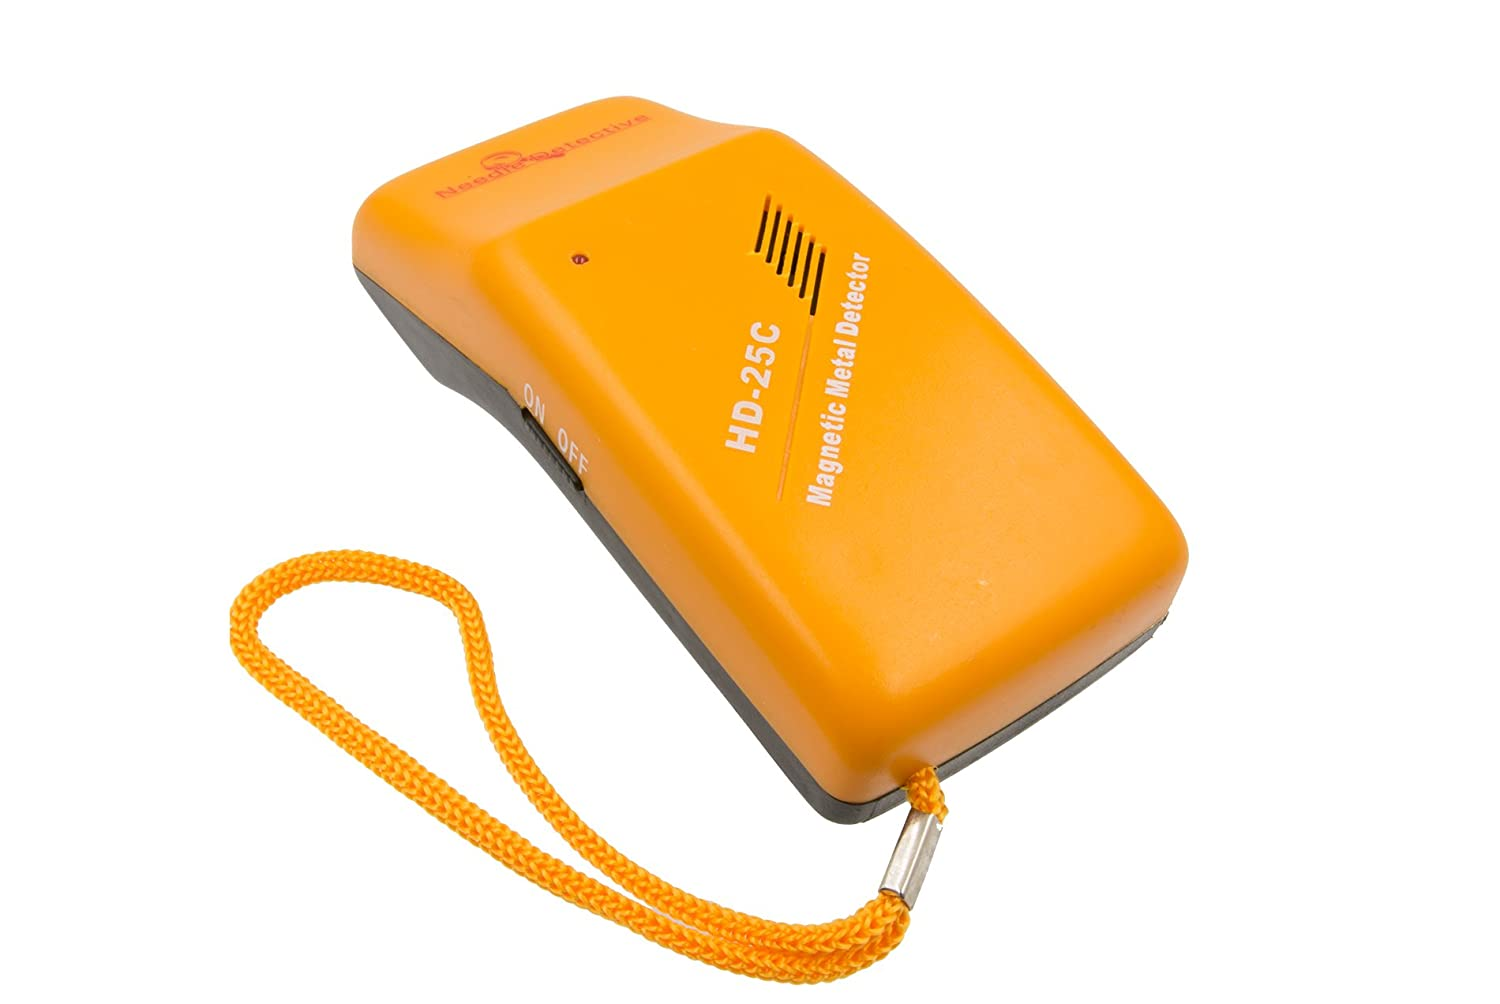 Needle Detective Handheld Needle Detector – Magnetic Needle, Staple, and Small Metal Object Detector, Mixed Metal Detector